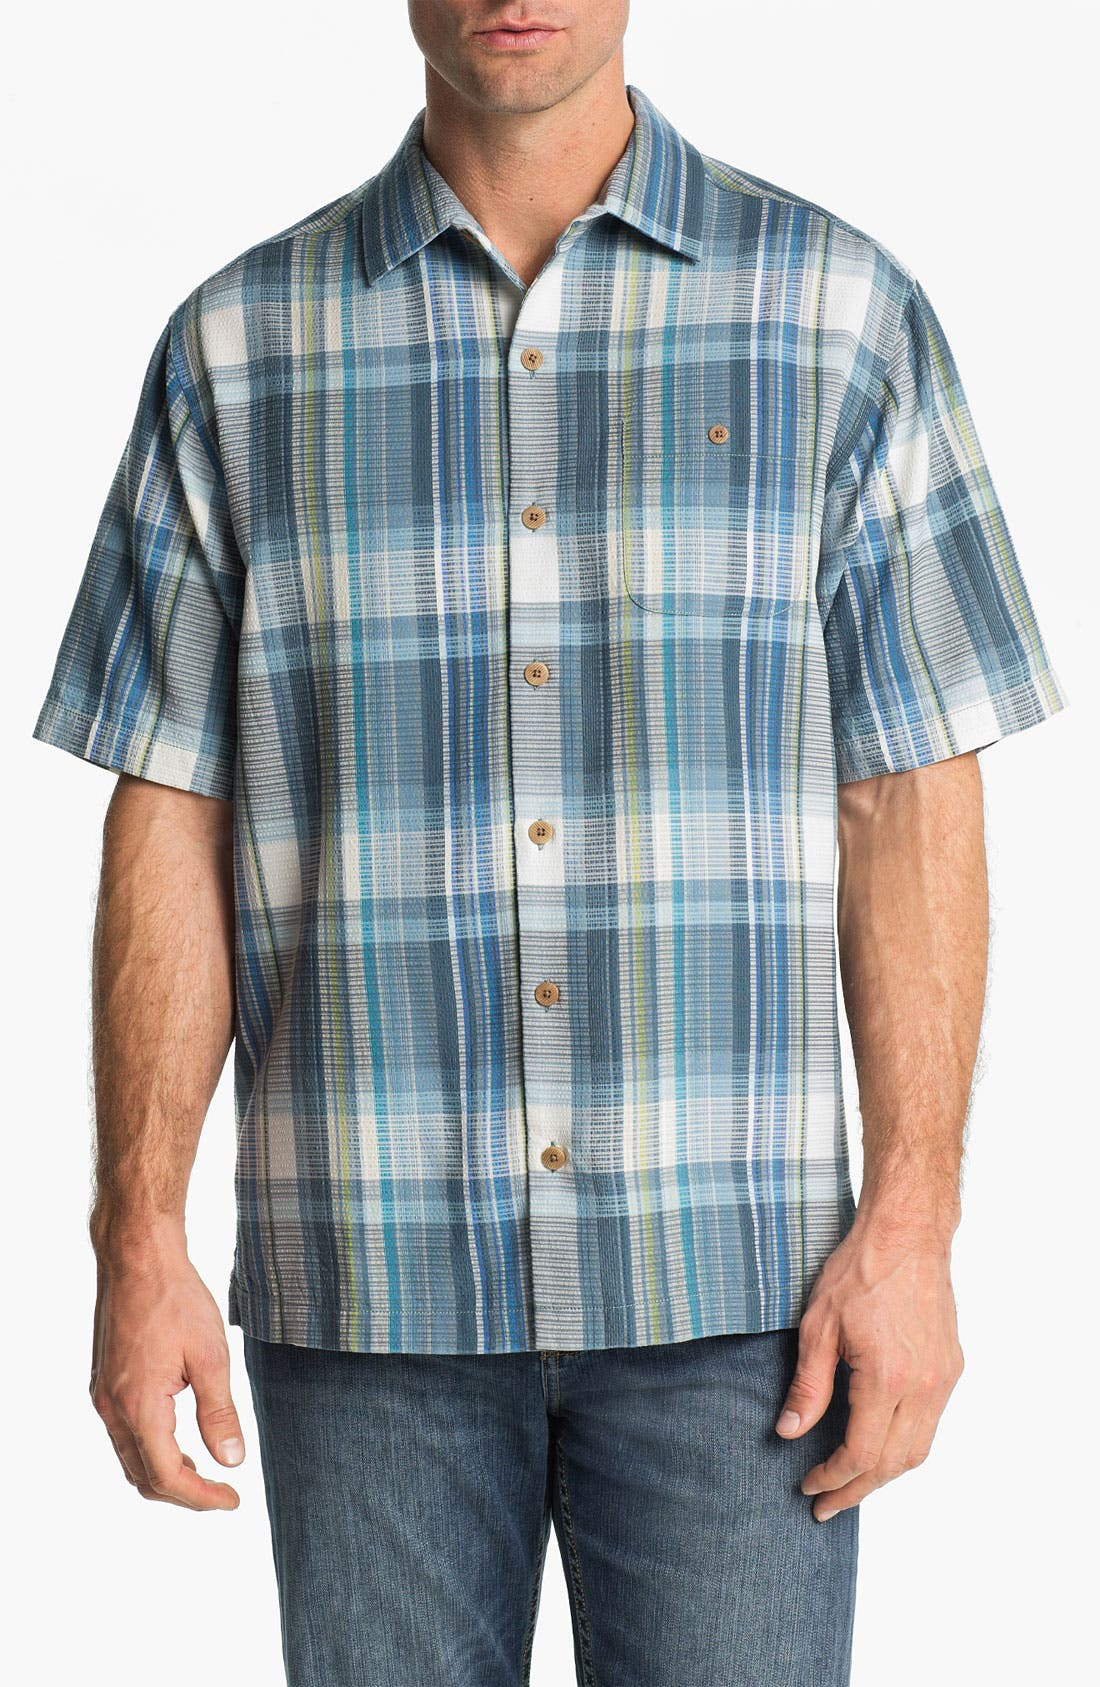 Main Image - Tommy Bahama 'Sand Plaid' Silk Campshirt